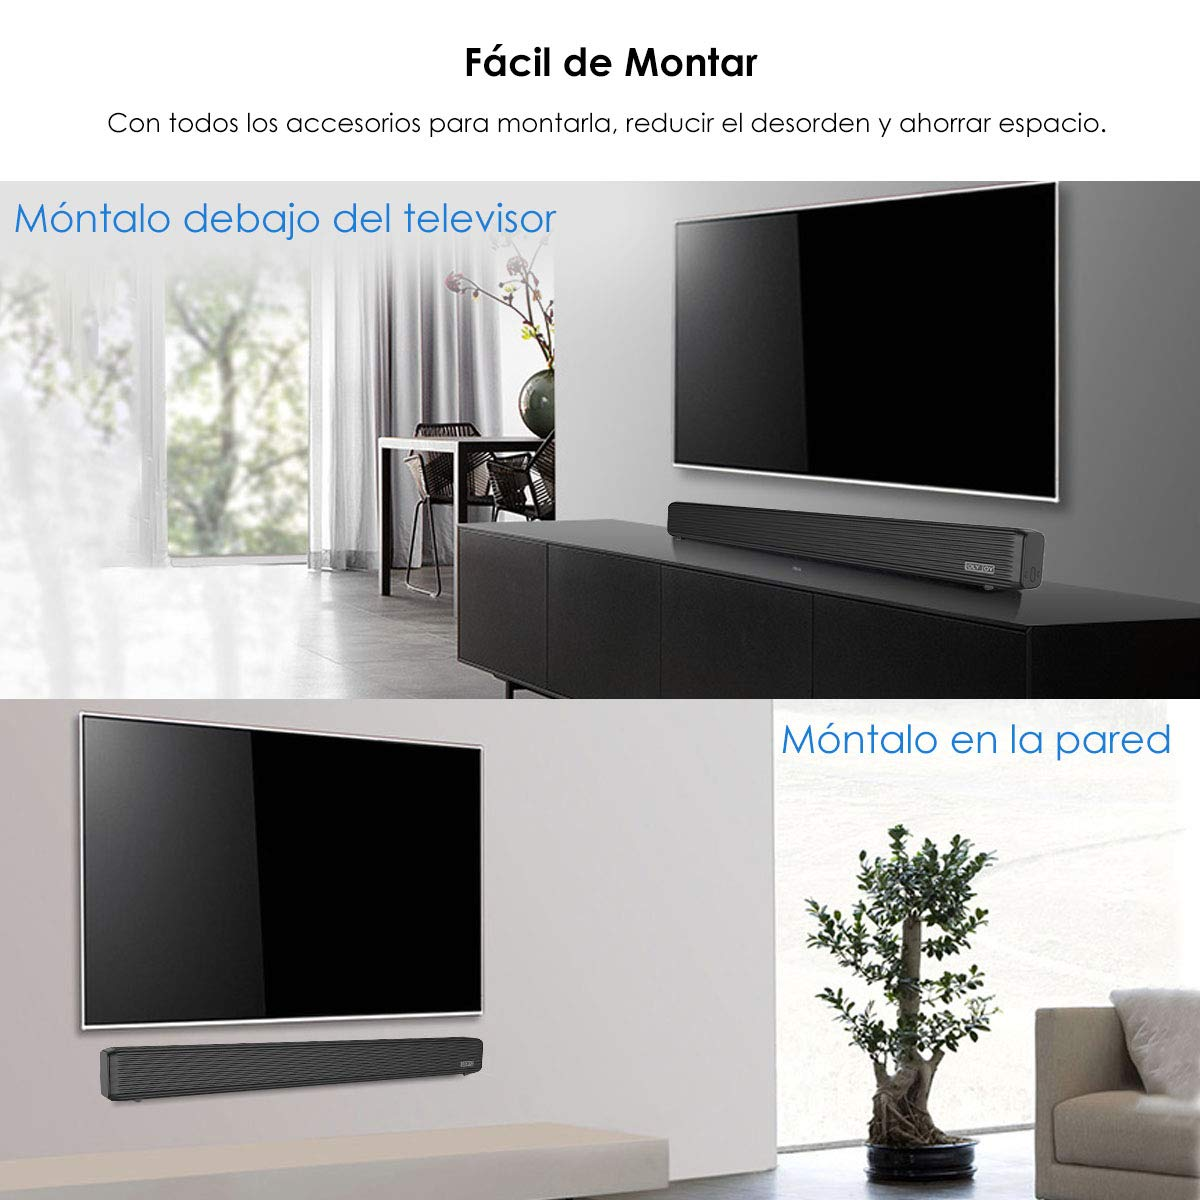 Barra de Sonido, Wellwerks 95W Altavoz de Audio para TV Bluetooth V4.2 [Conexiones Alámbrico/Inalámbrico] Bluetooth Sound-Bar Subwoofer para ...